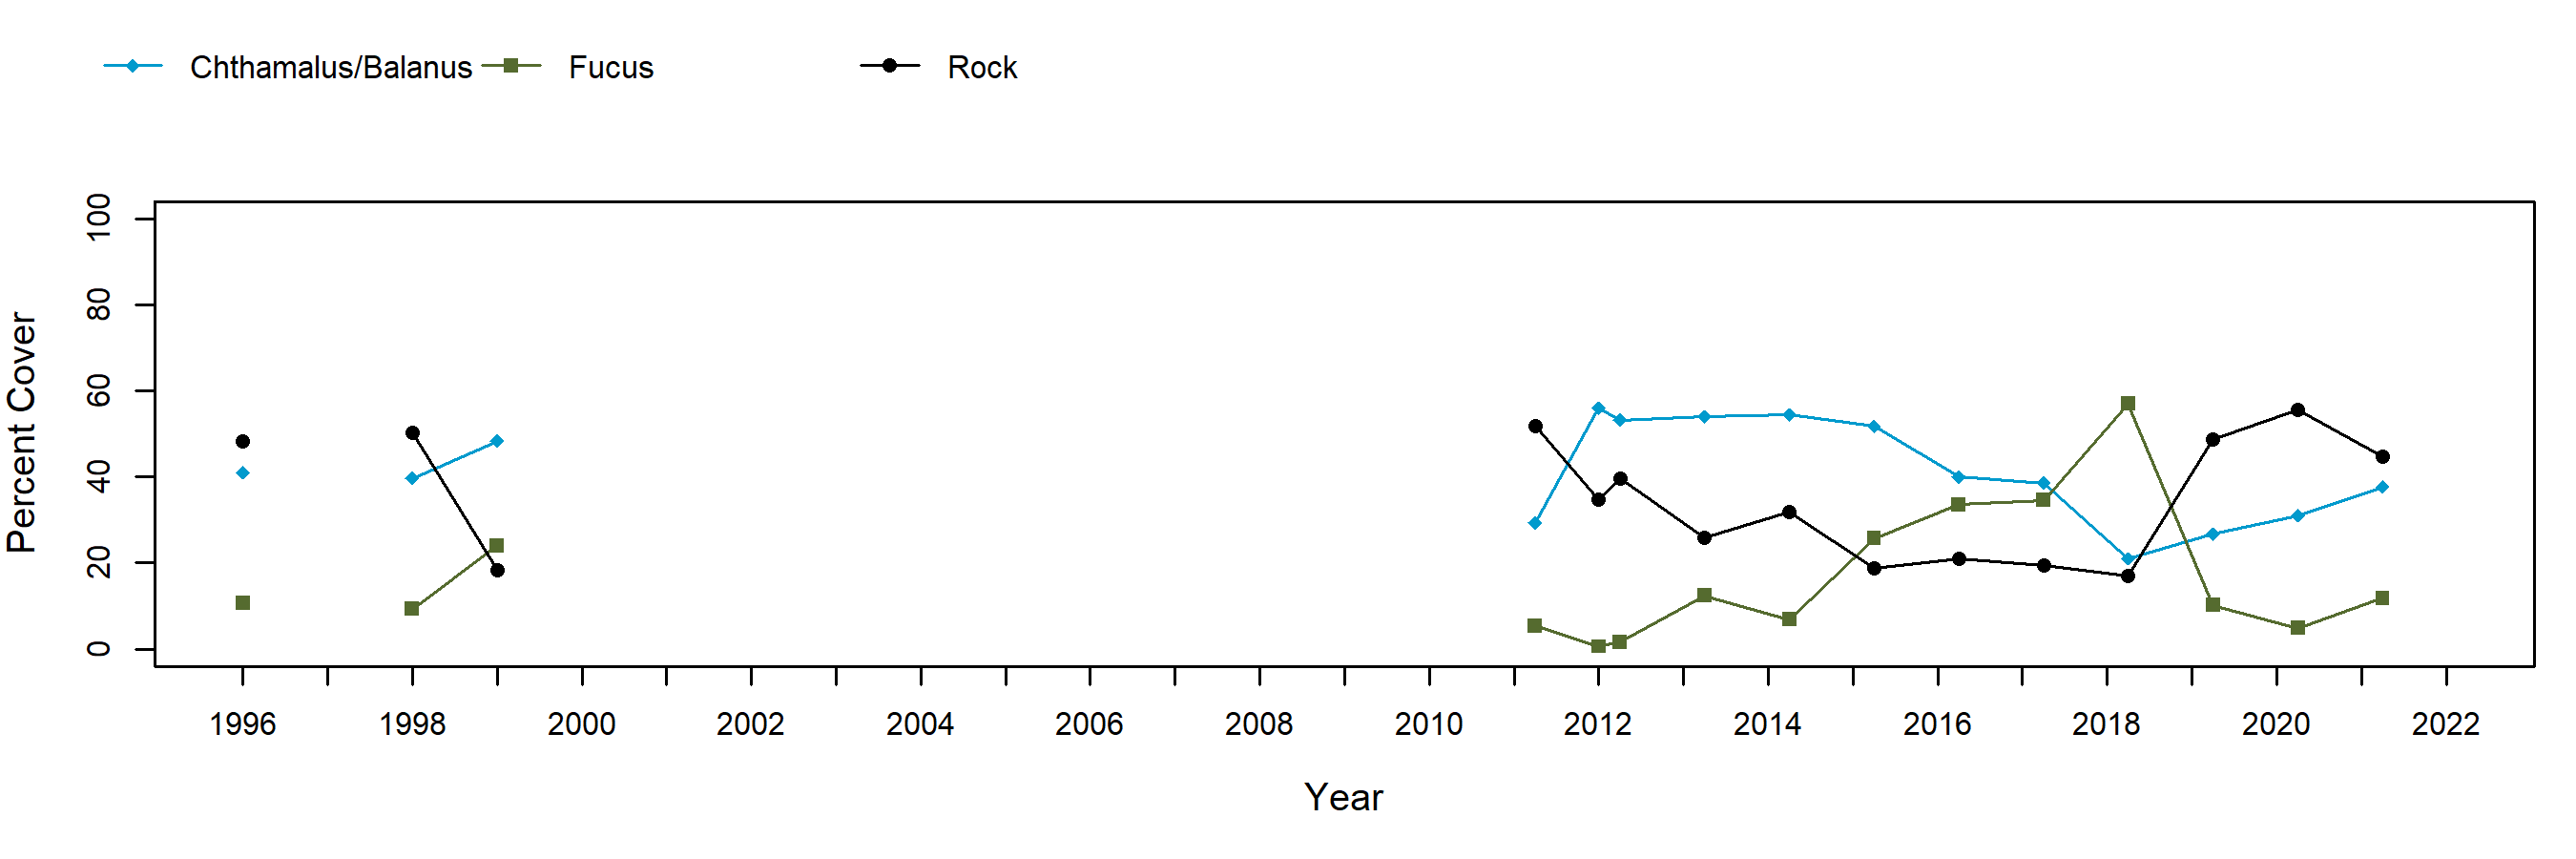 Sage Rock barnacle trend plot